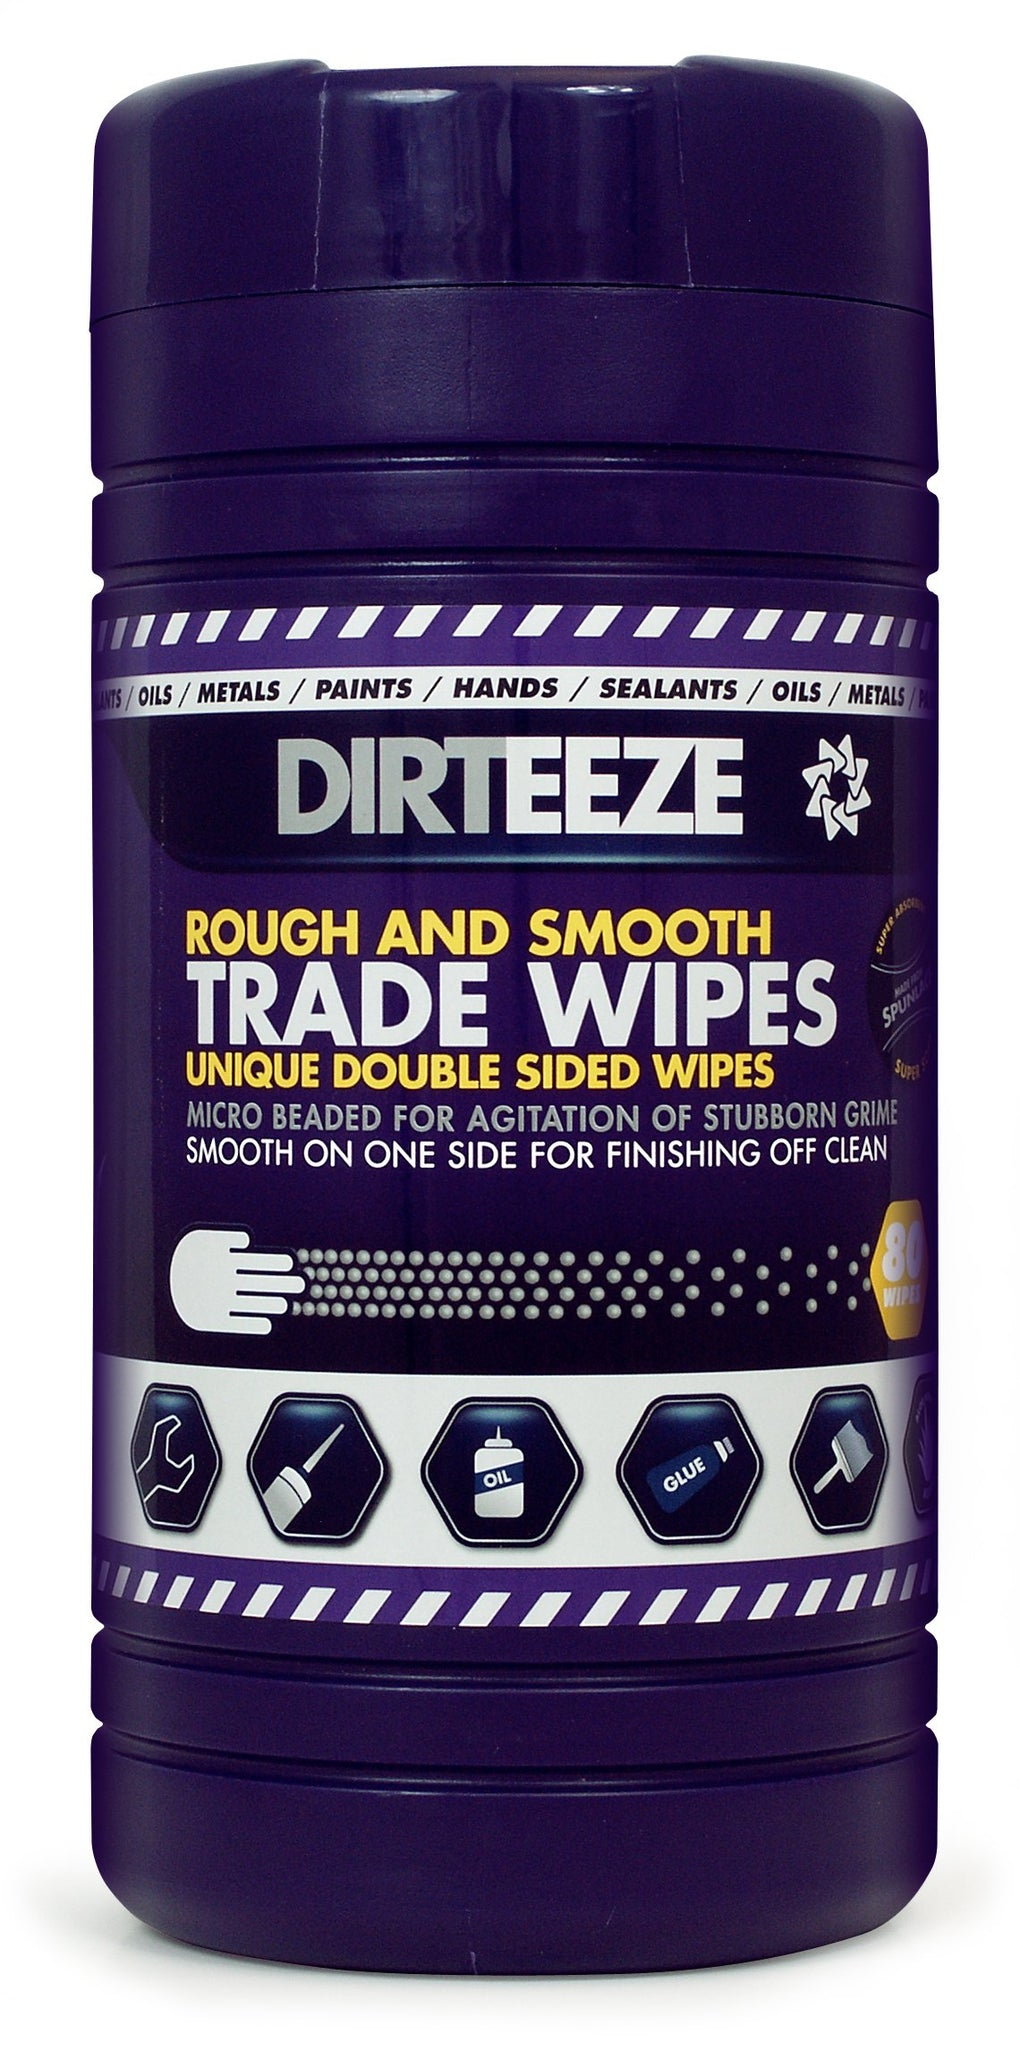 Dirteeze Rough & Smooth Trade Wipes - DGPCL80 ||8 Tubs of 80 Wipes